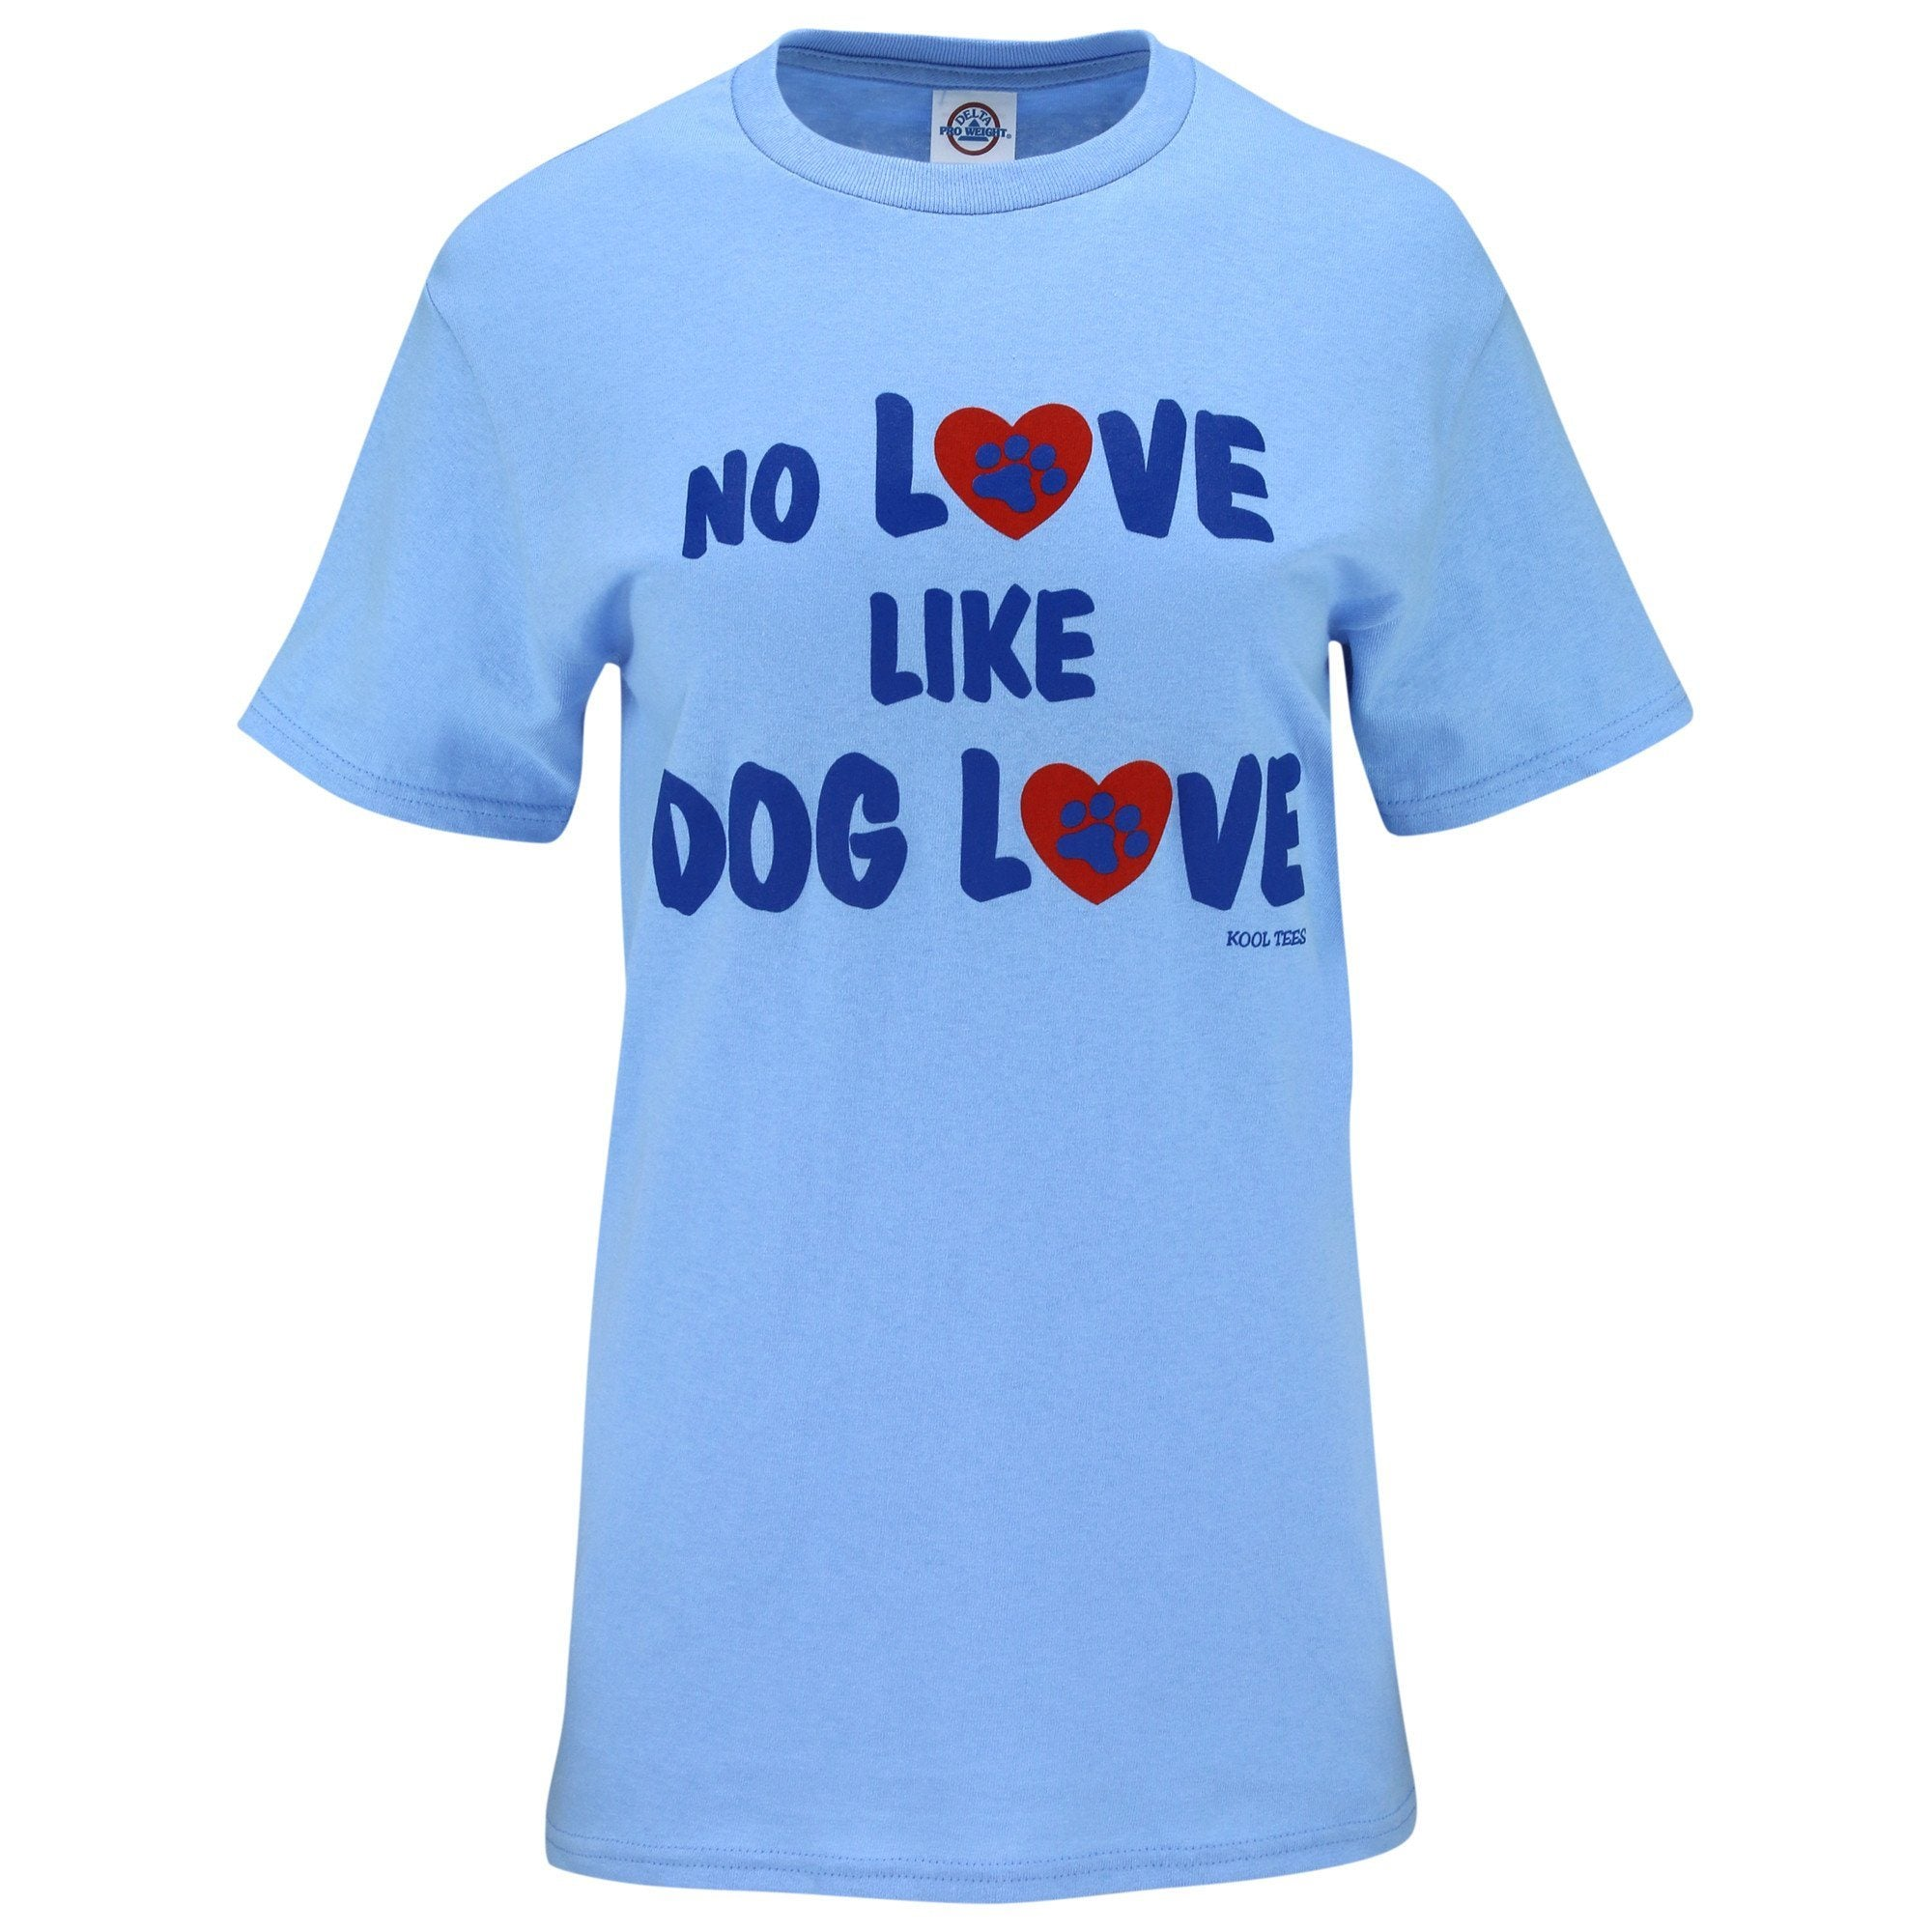 029a87f0fb24 No Love Like Cat/Dog Love T-Shirt| The Animal Rescue Site